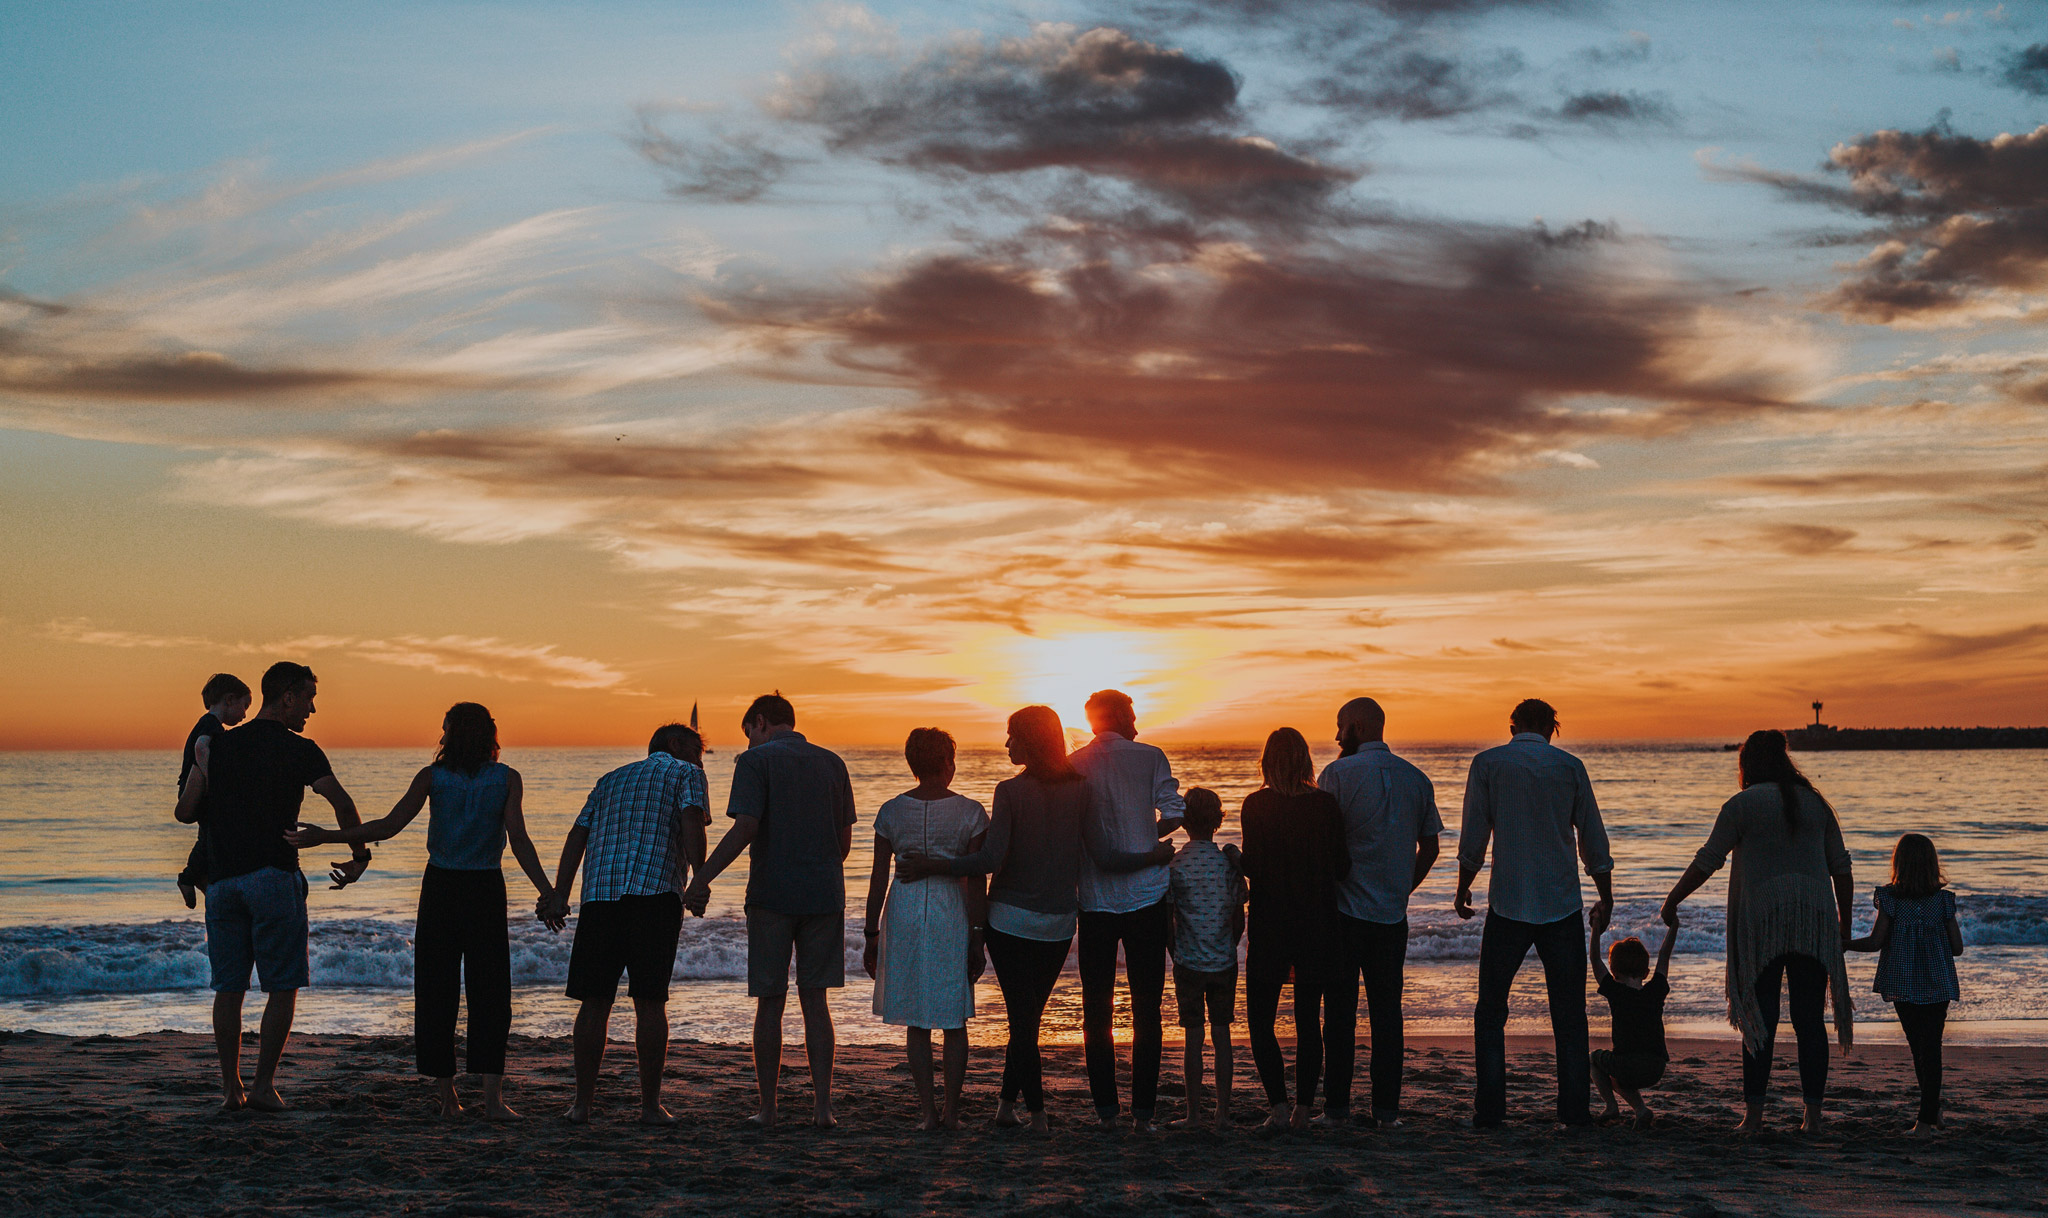 TOGETHER - Building a Godly family and home is a difficult task in an increasingly secular world. Join a group of couples both with and without children as we work together to build families that honor God.